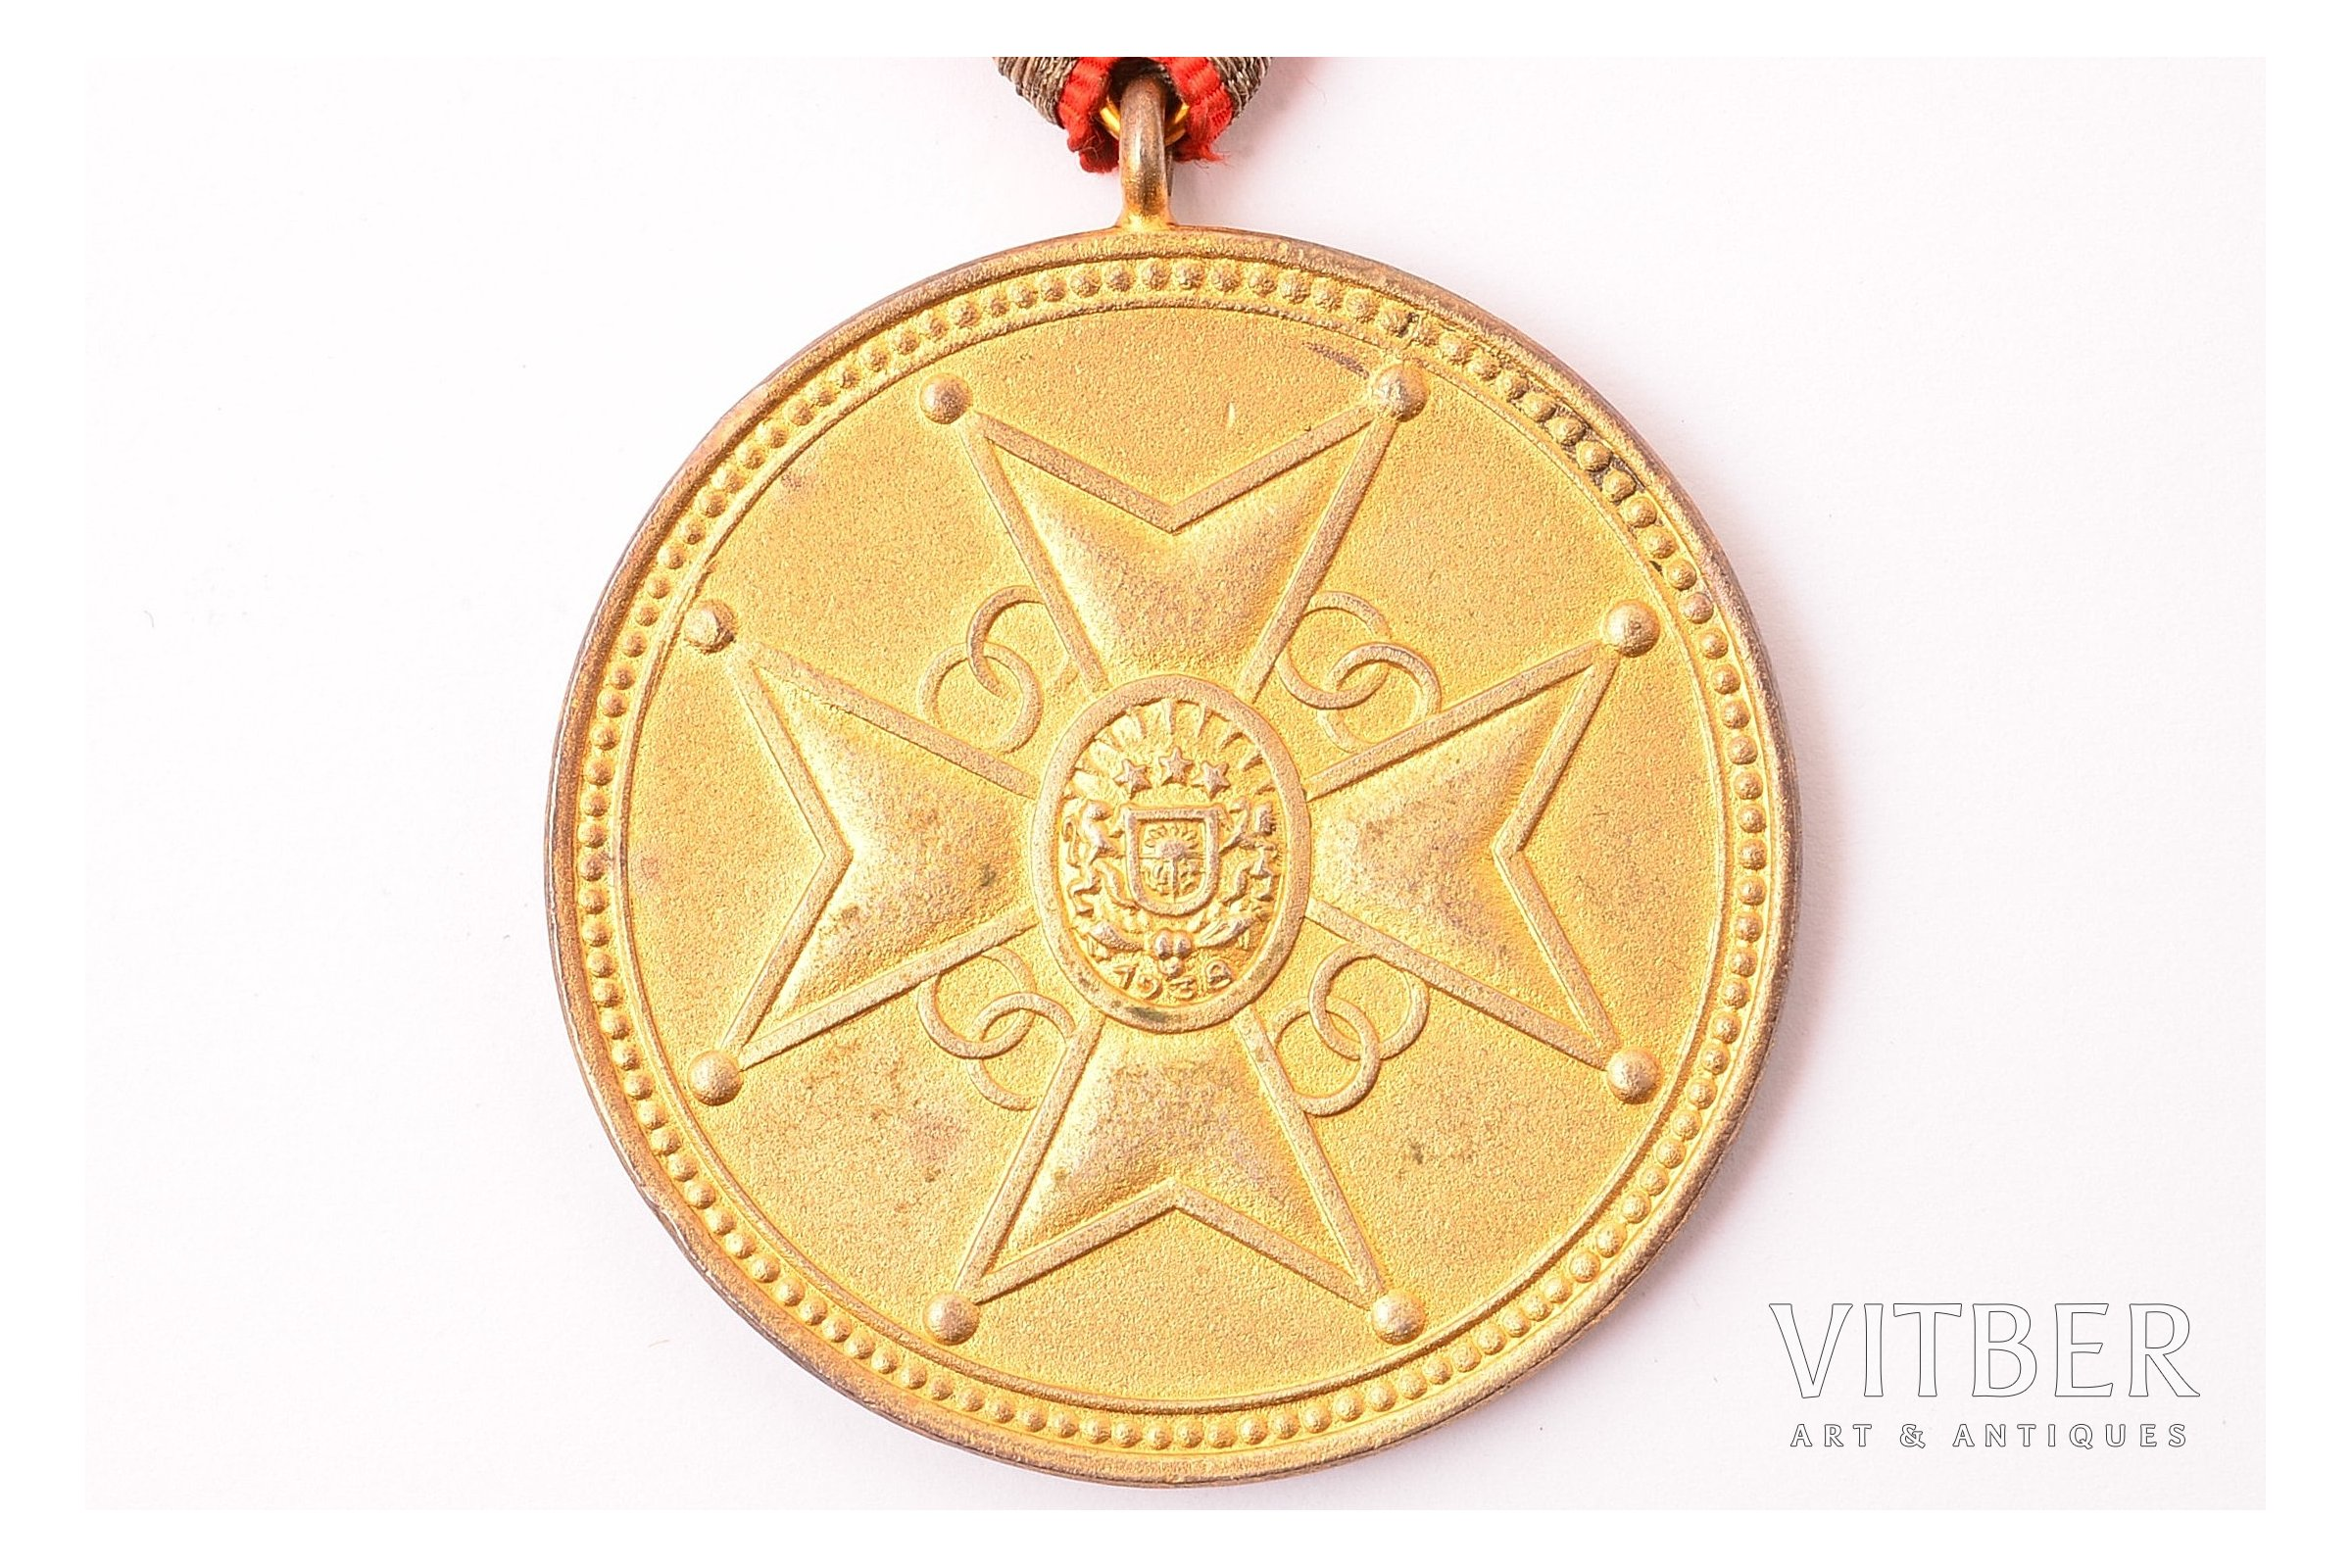 Medal, of honour of the Cross of Recognition, small size, in